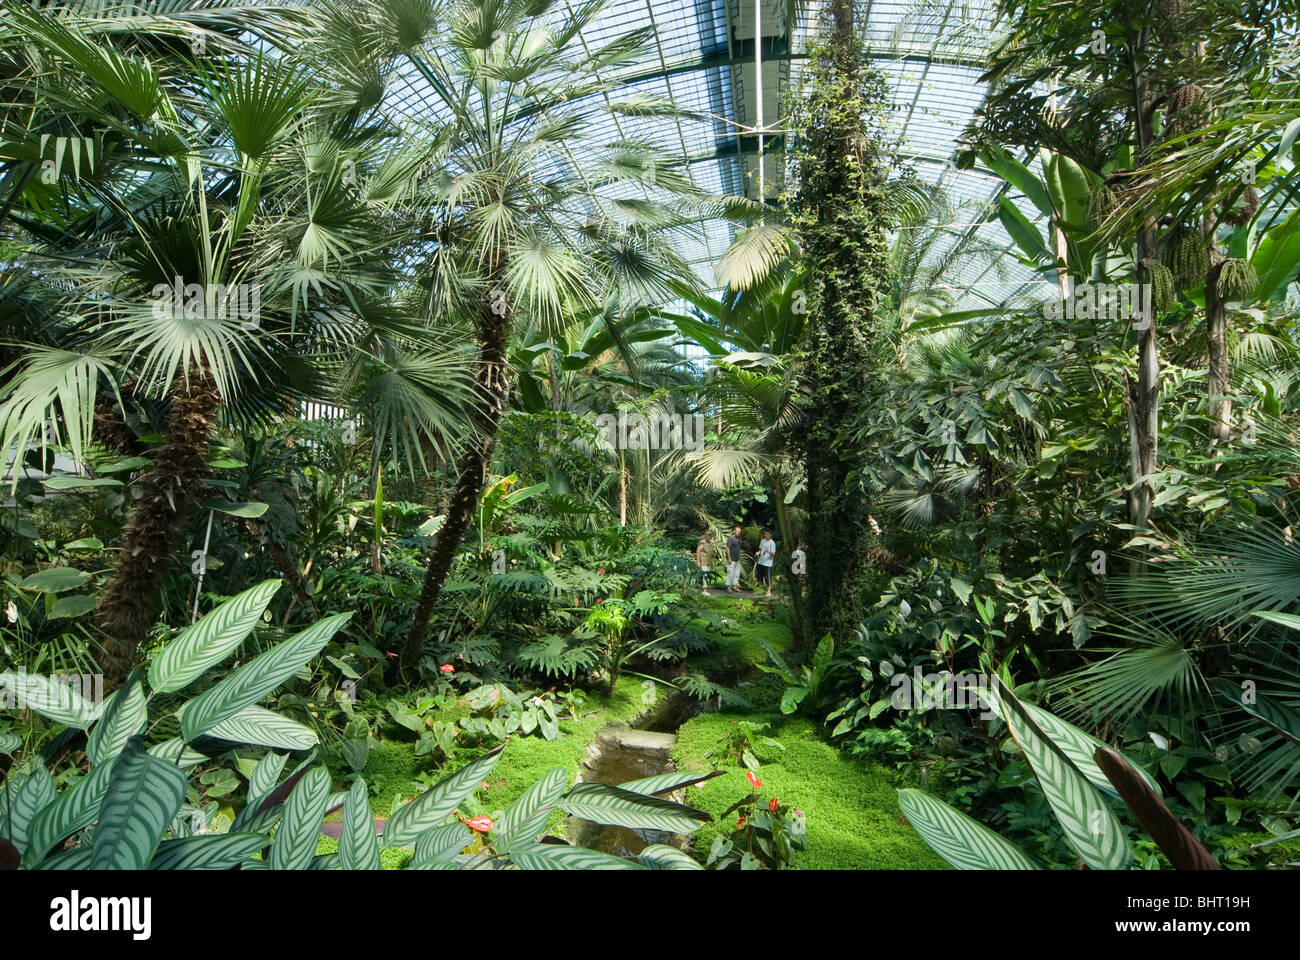 frankfurt botanical garden stockfotos frankfurt botanical garden bilder alamy. Black Bedroom Furniture Sets. Home Design Ideas